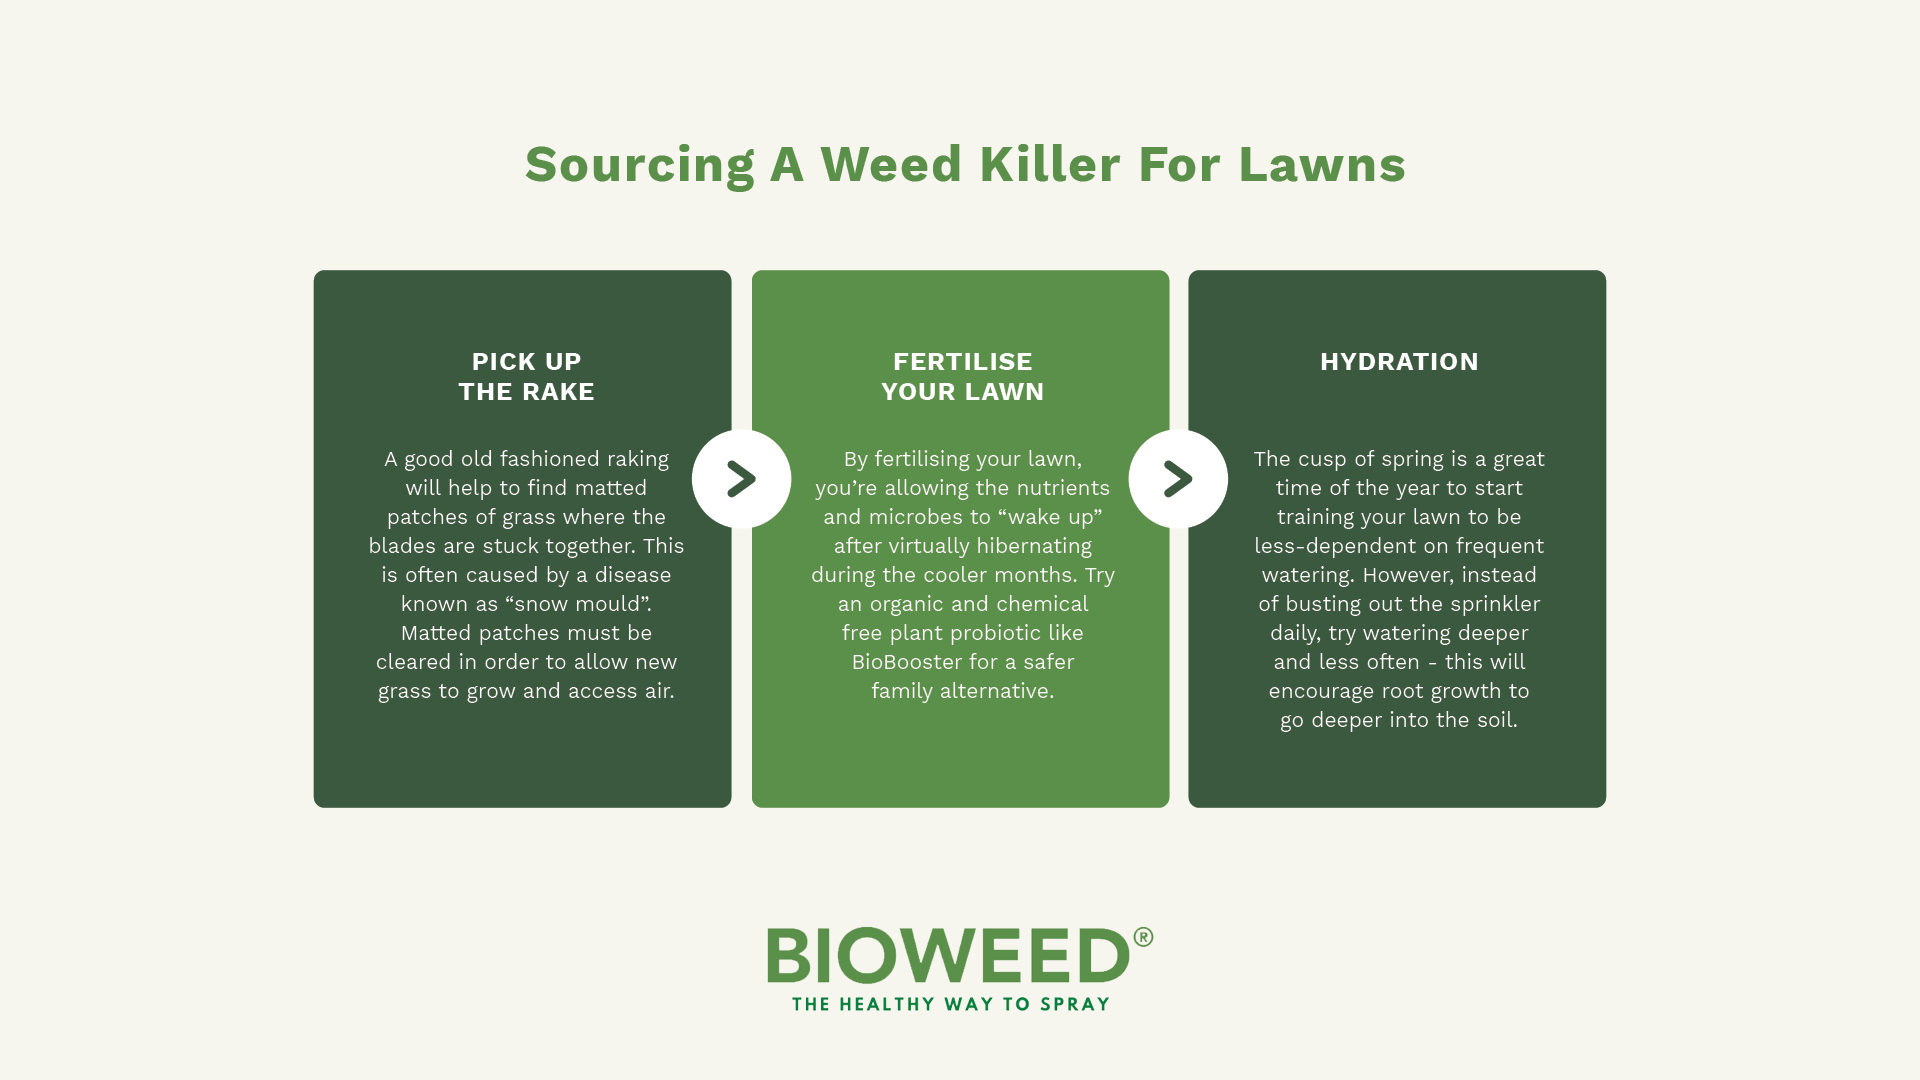 Sourcing-A-Weed-Killer-For-Lawns2